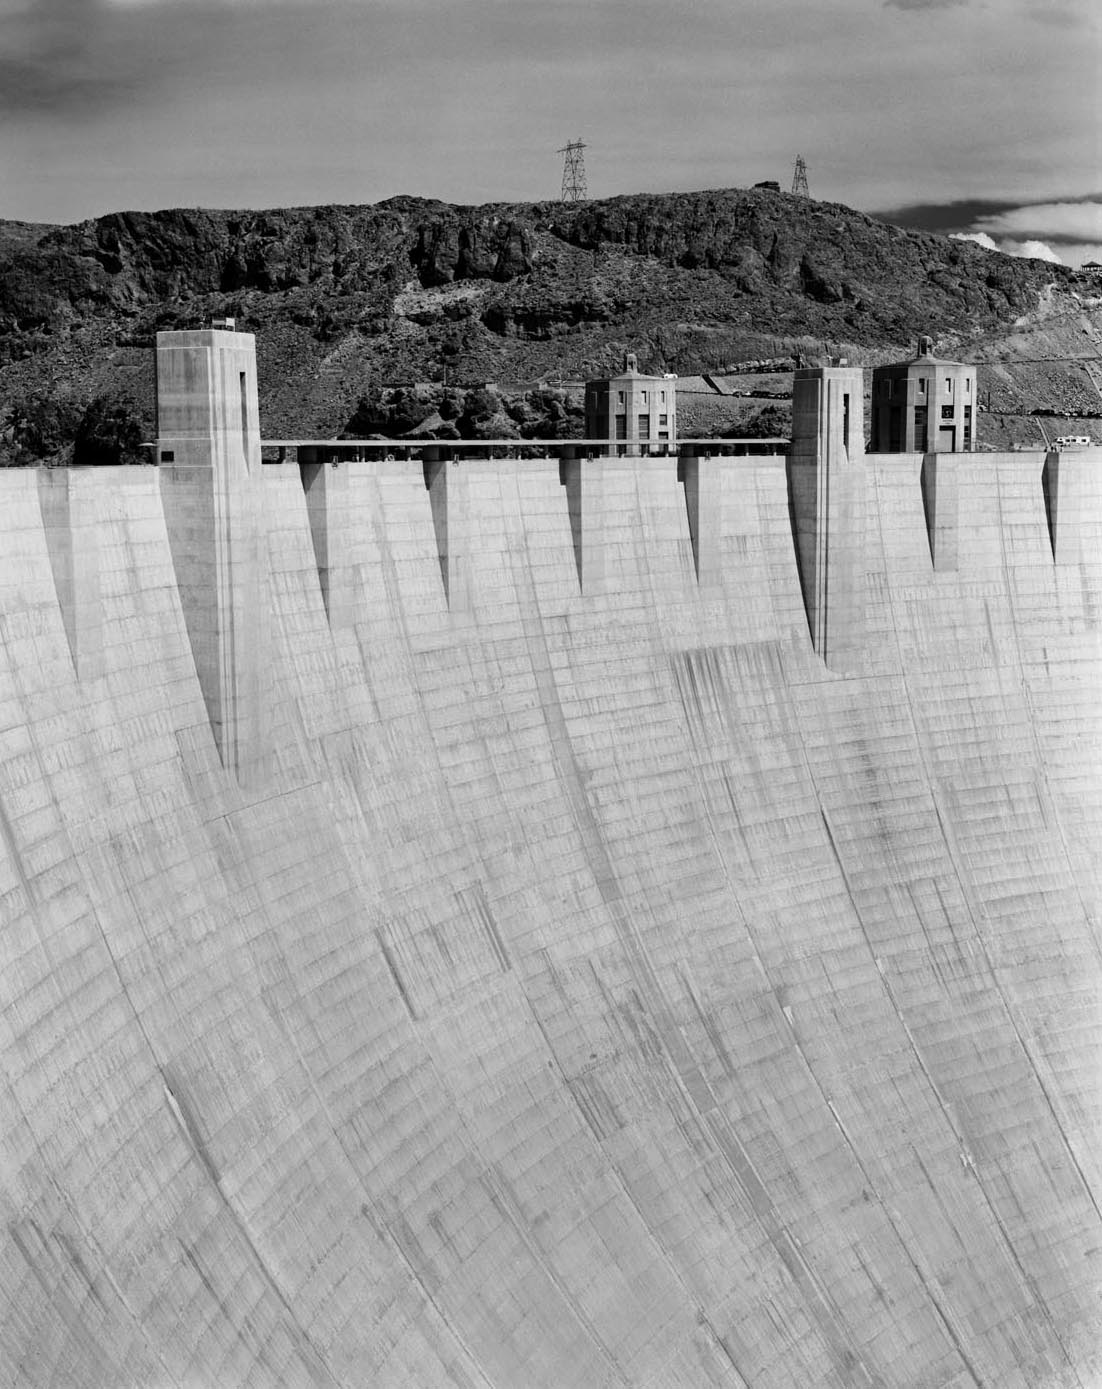 Face of the Hoover Dam